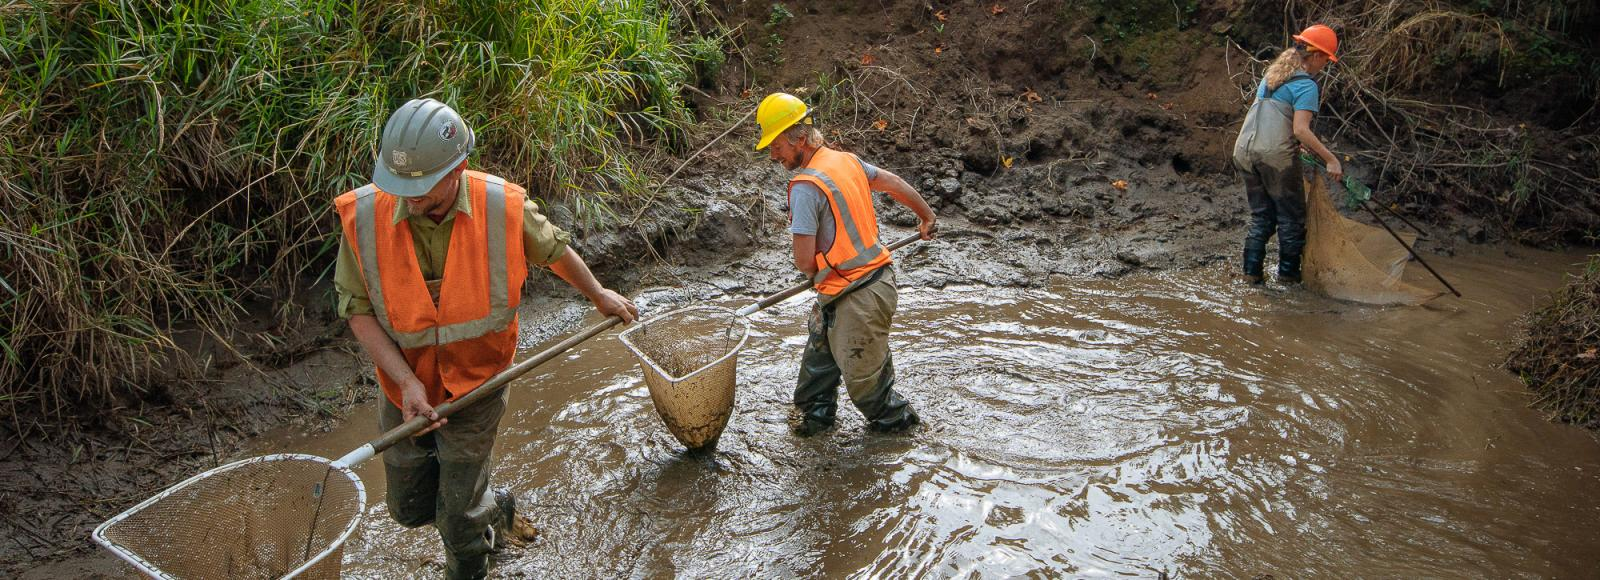 Three biologists wearing orange vests and yellow hard hats, with nets in a muddy pool